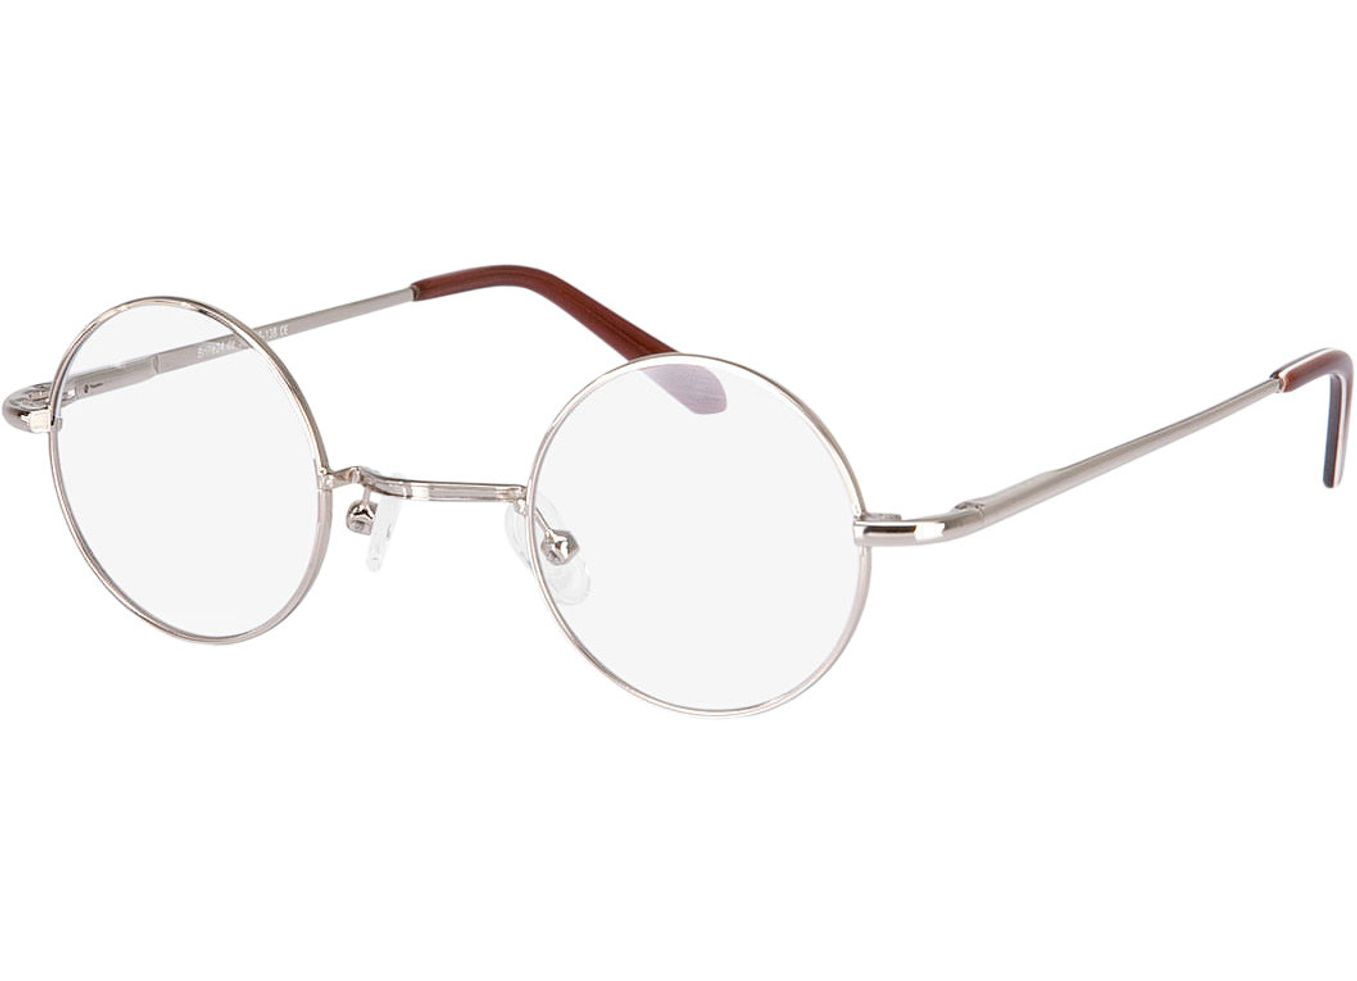 1403-singlevision-0000 Cary-gold Gleitsichtbrille, Vollrand, Rund Brille24 Collection